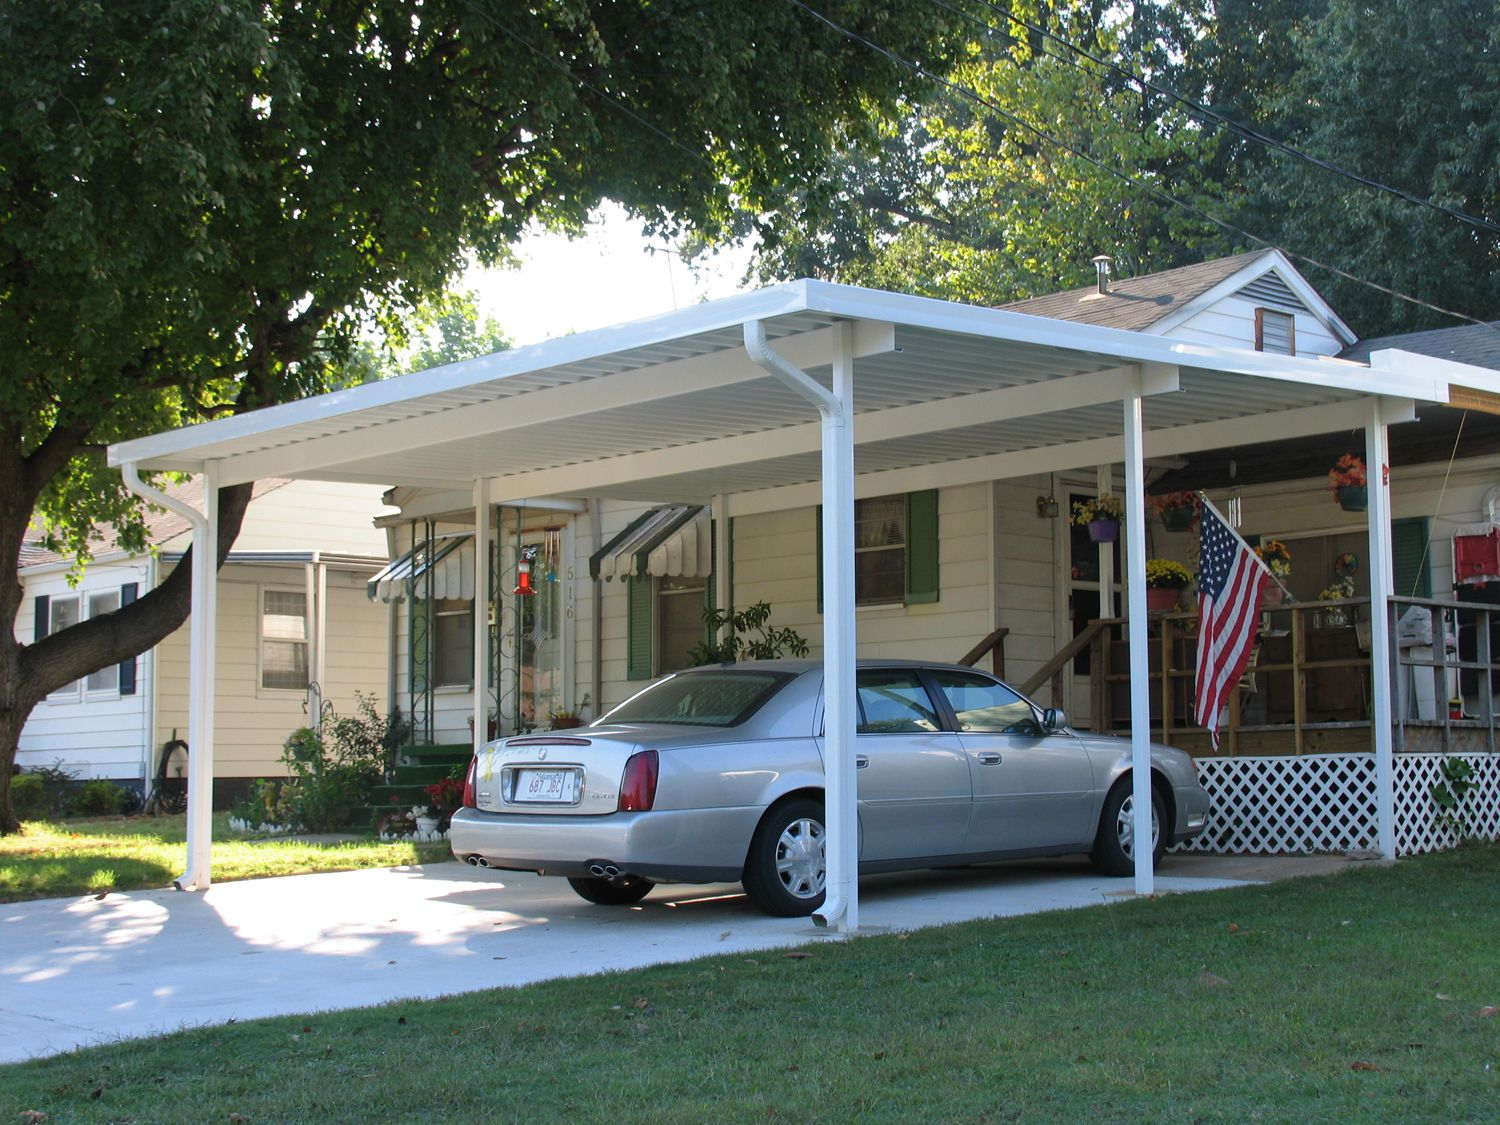 Pin by Sarah Damien on Back Porch Carport designs